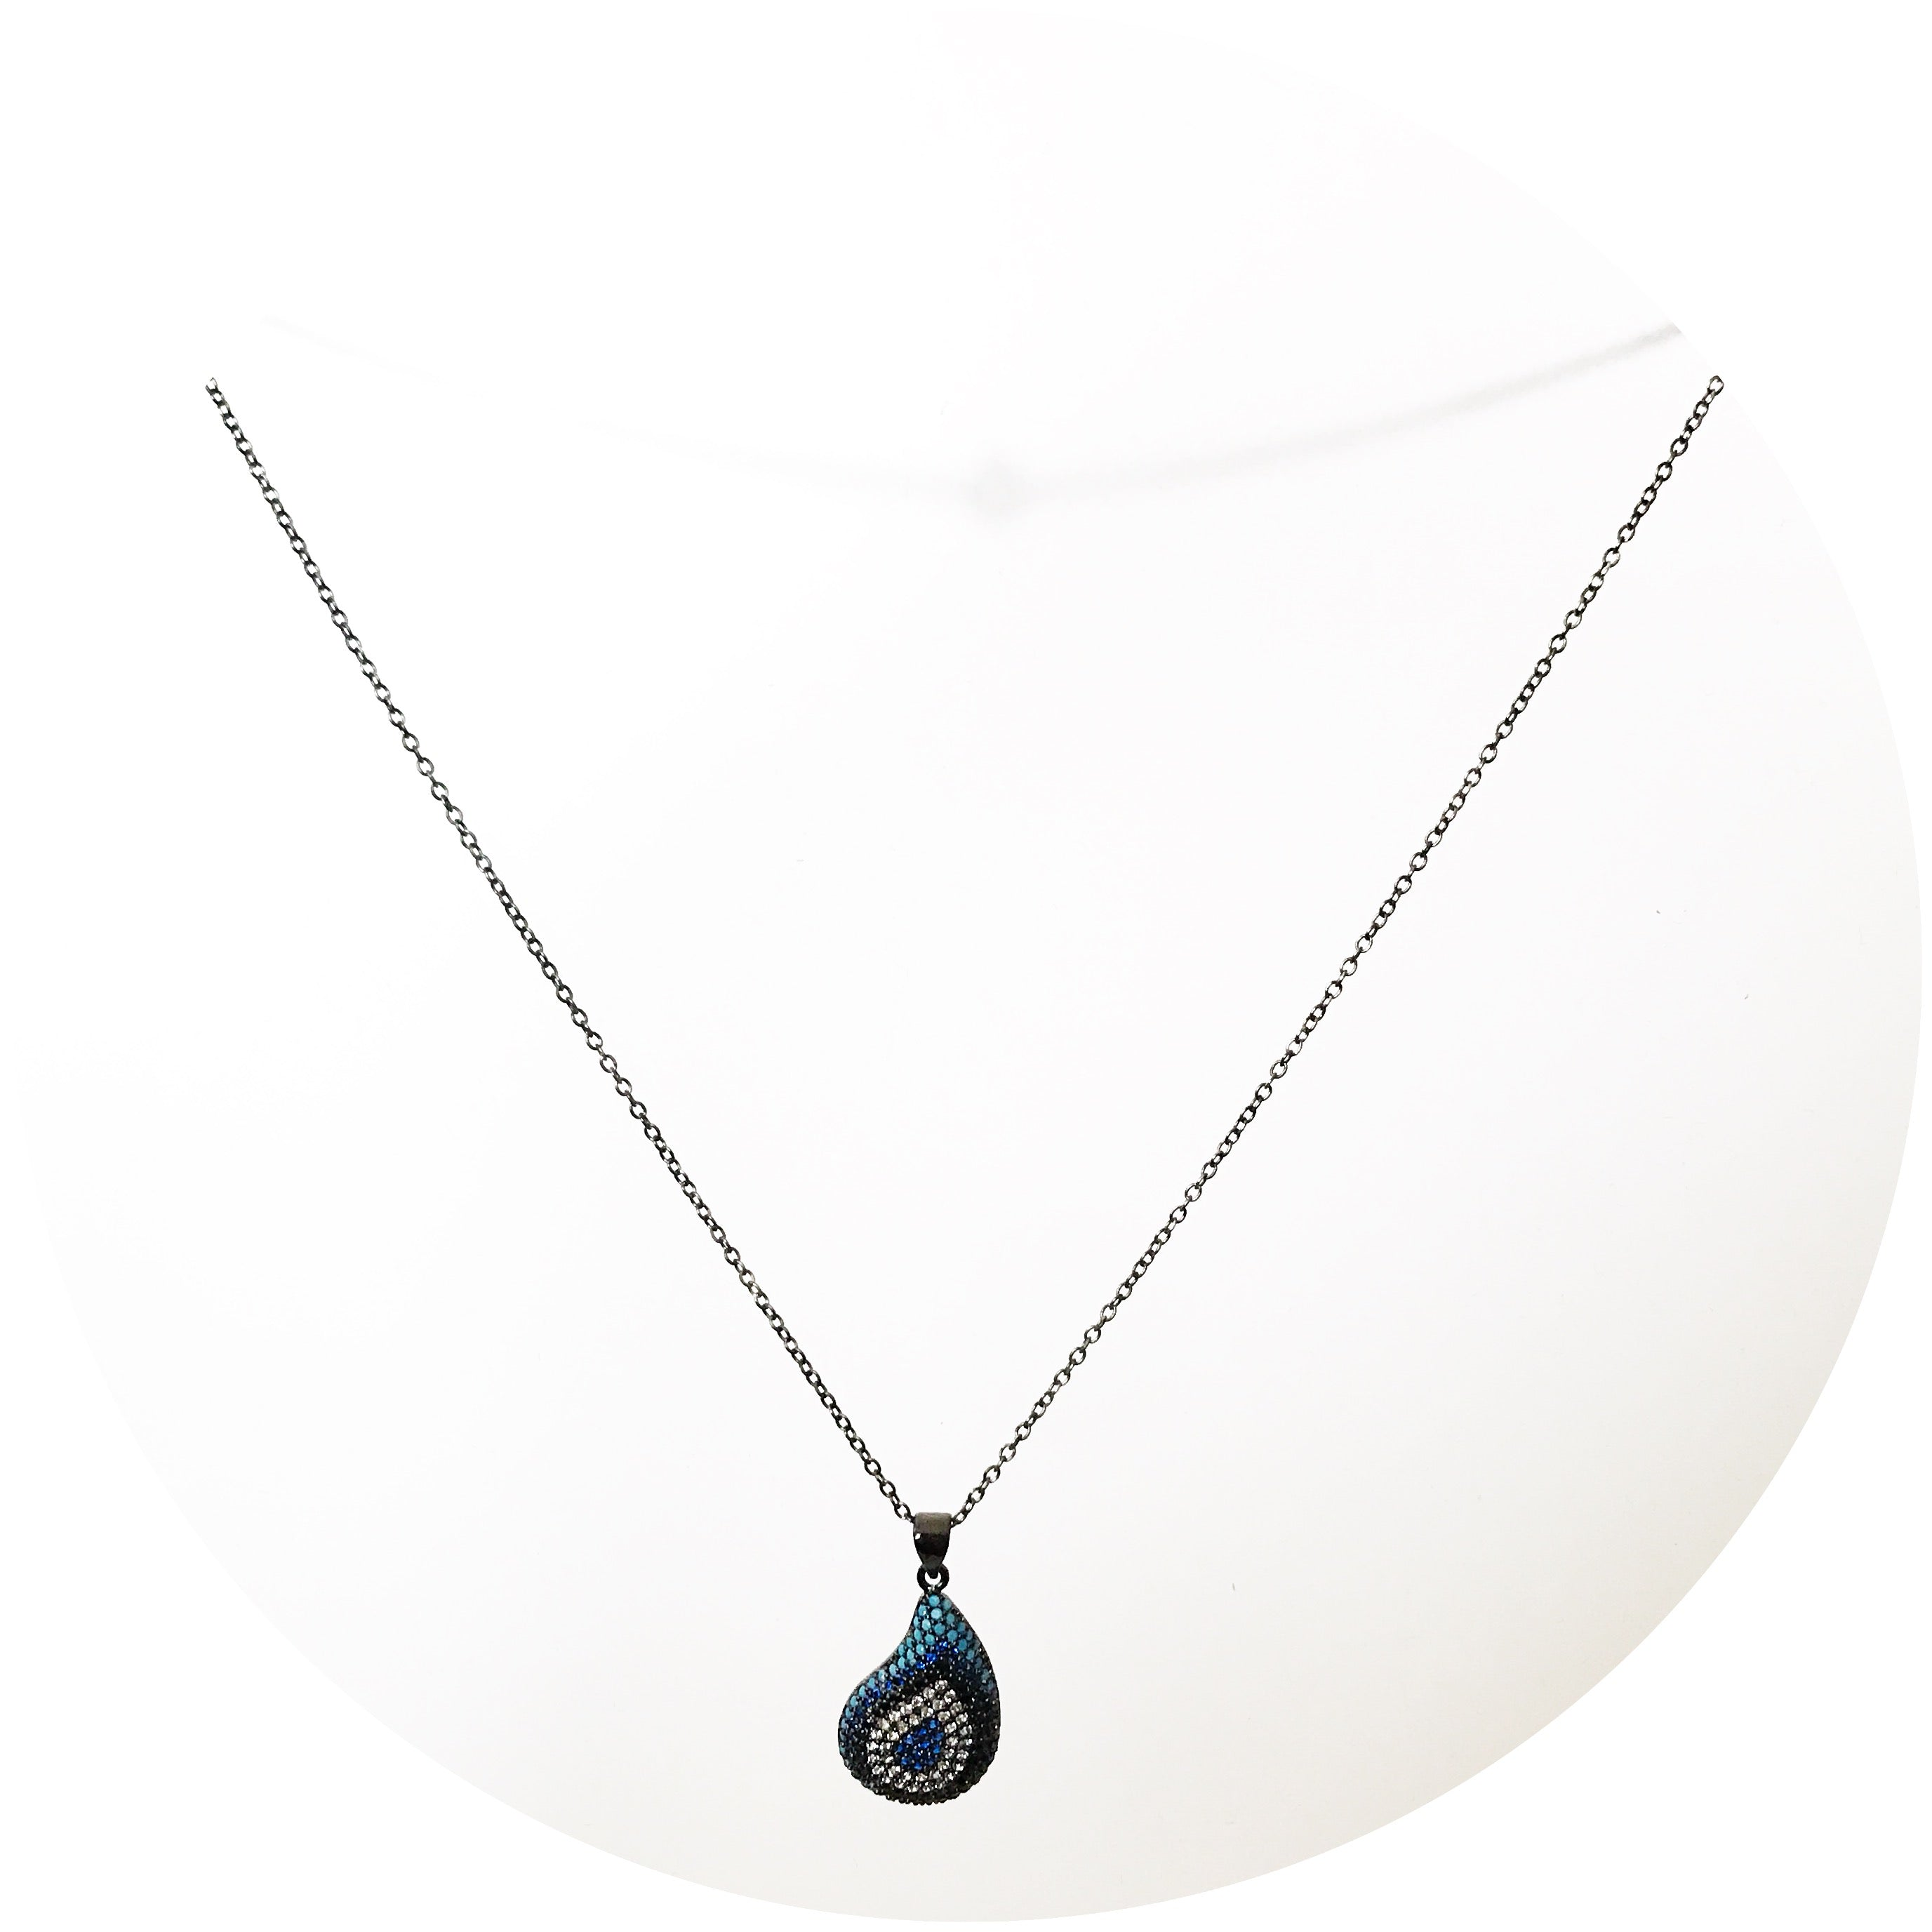 Pavé Turquoise Teardrop with Black Rhodium Chain